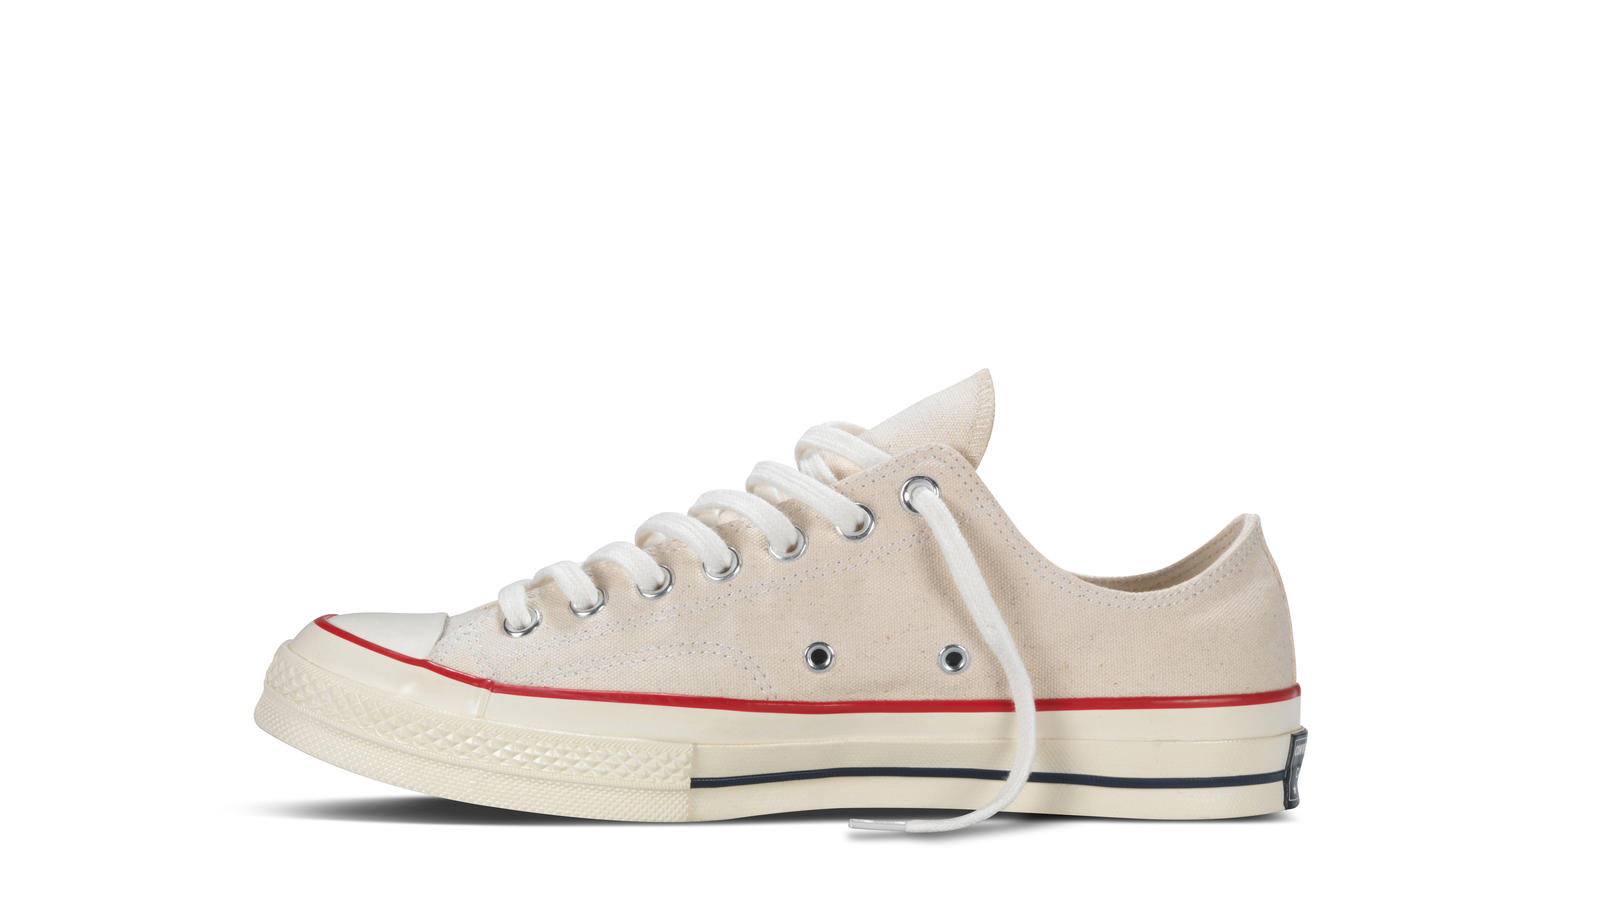 Converse 1970s Chuck Taylor All Star Left Original